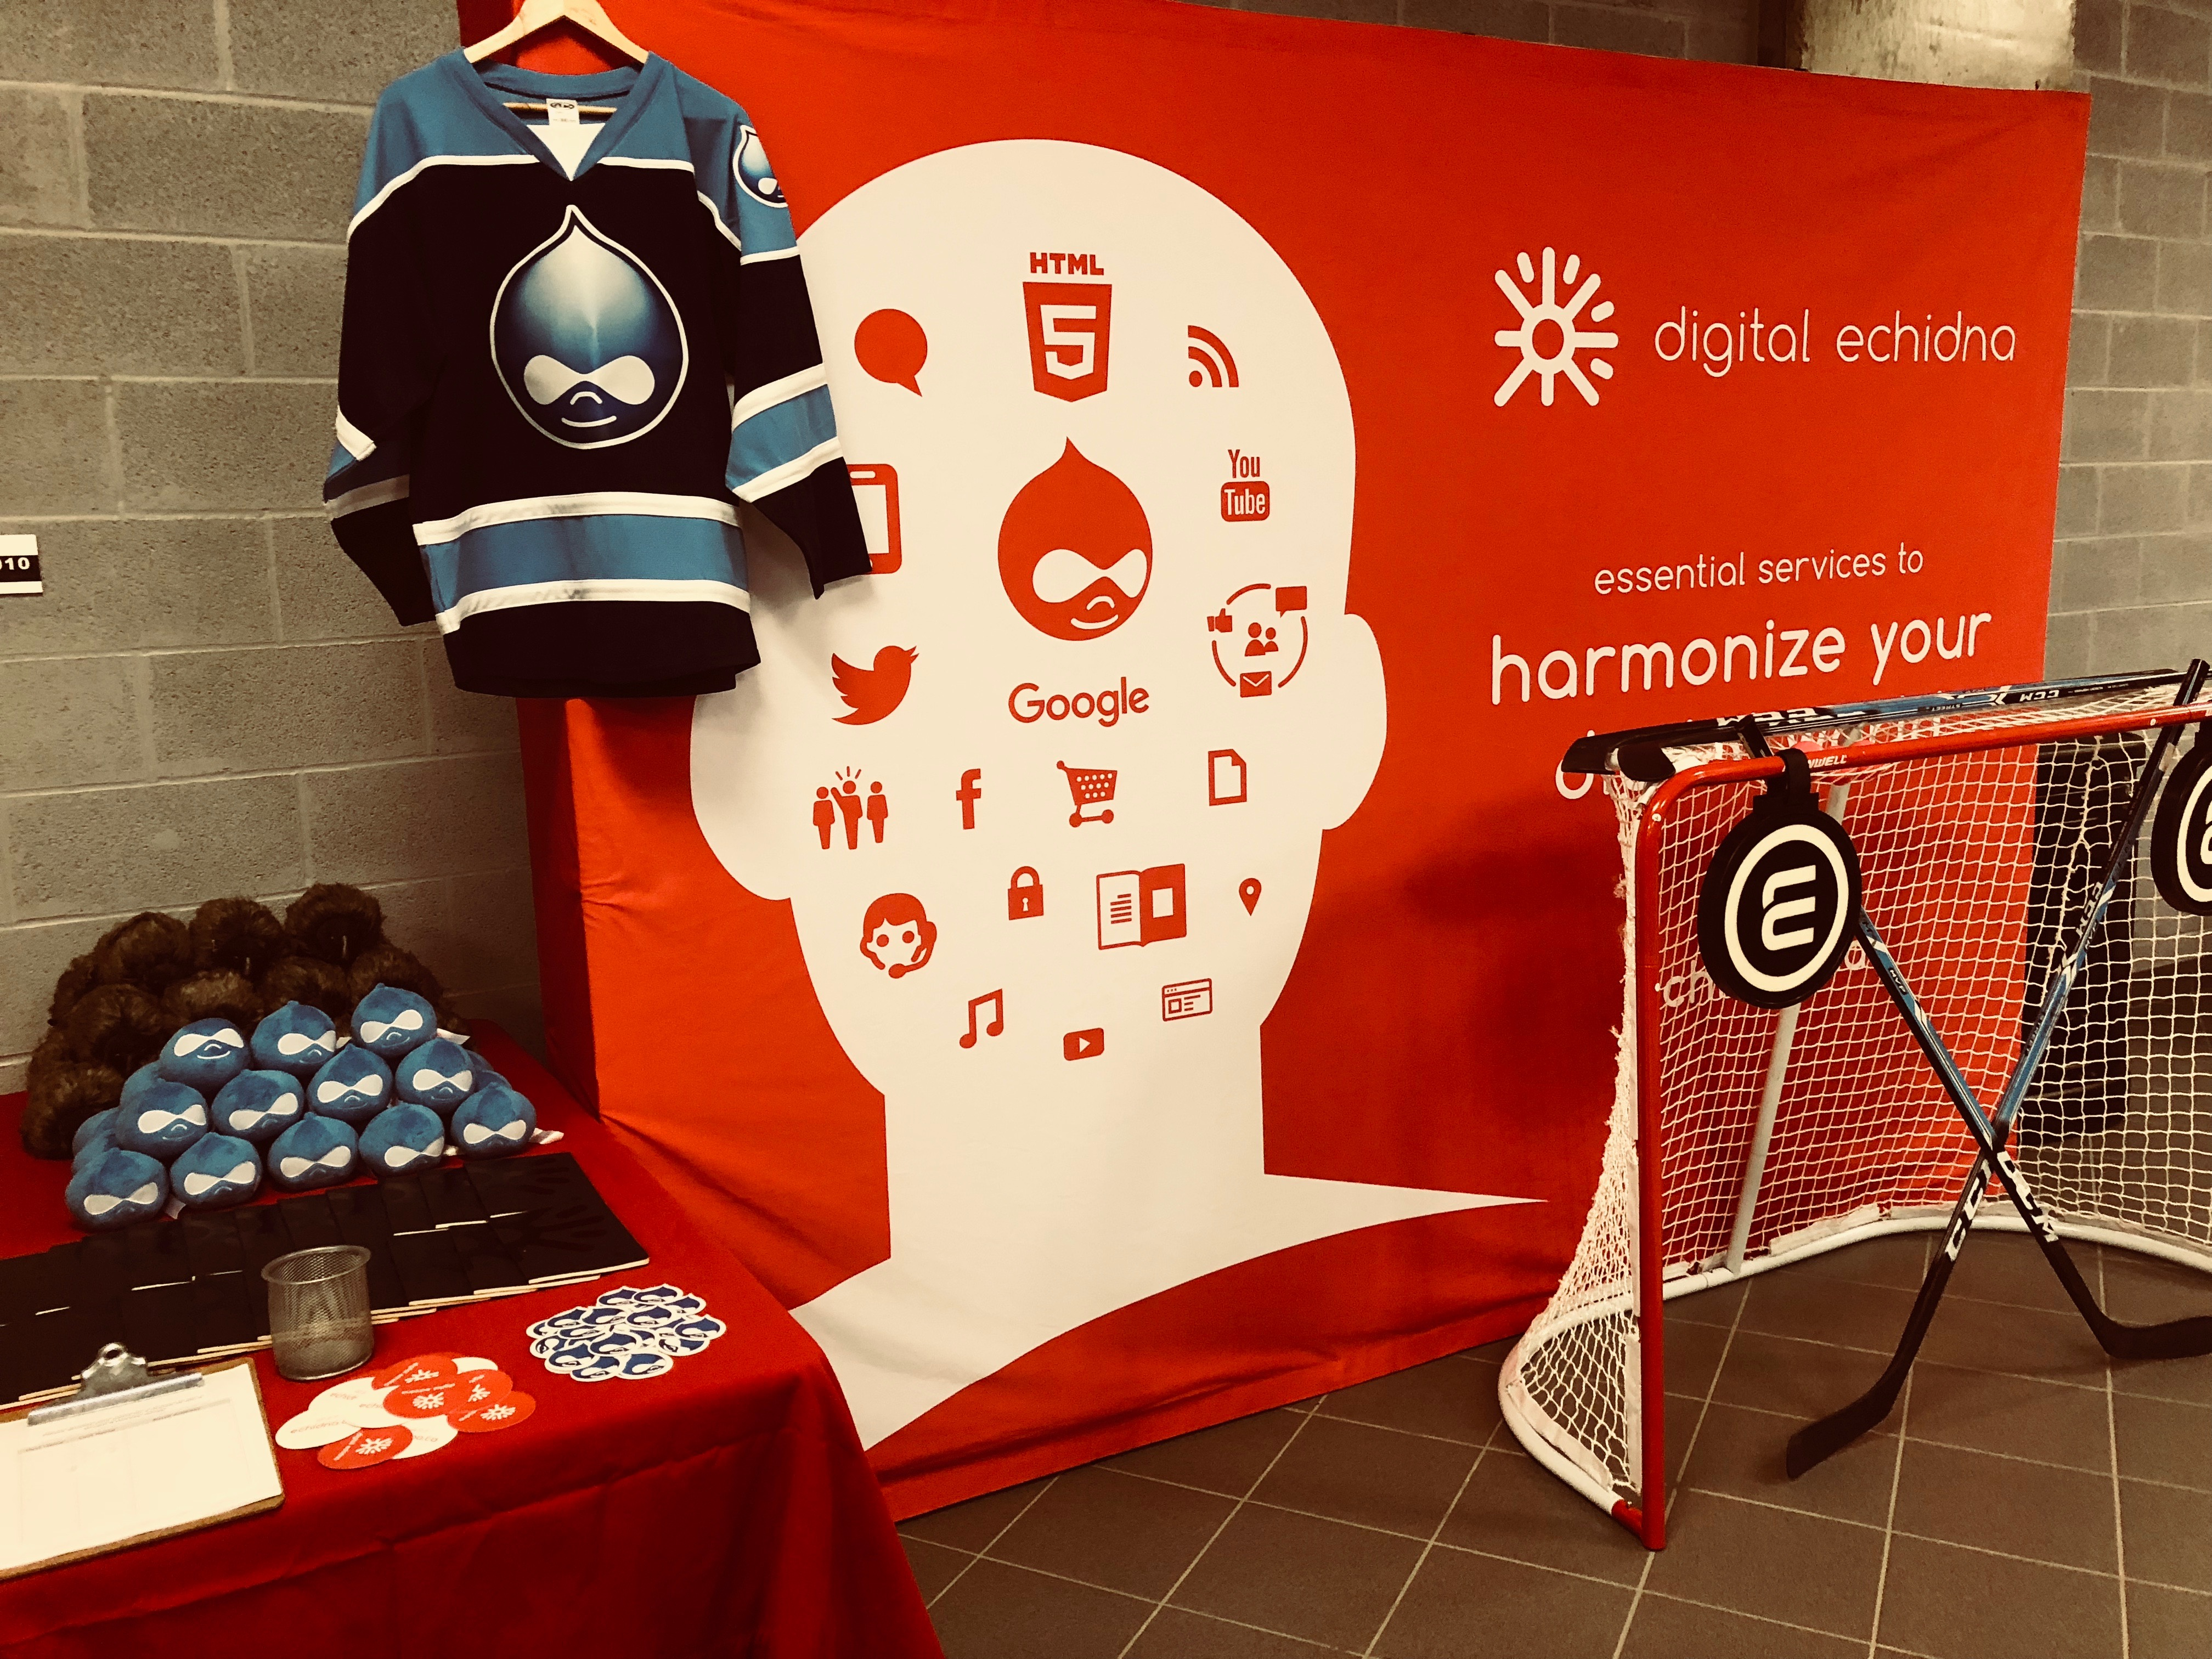 The Digital Echidna trade show booth, with banner, jersey, and hockey net.